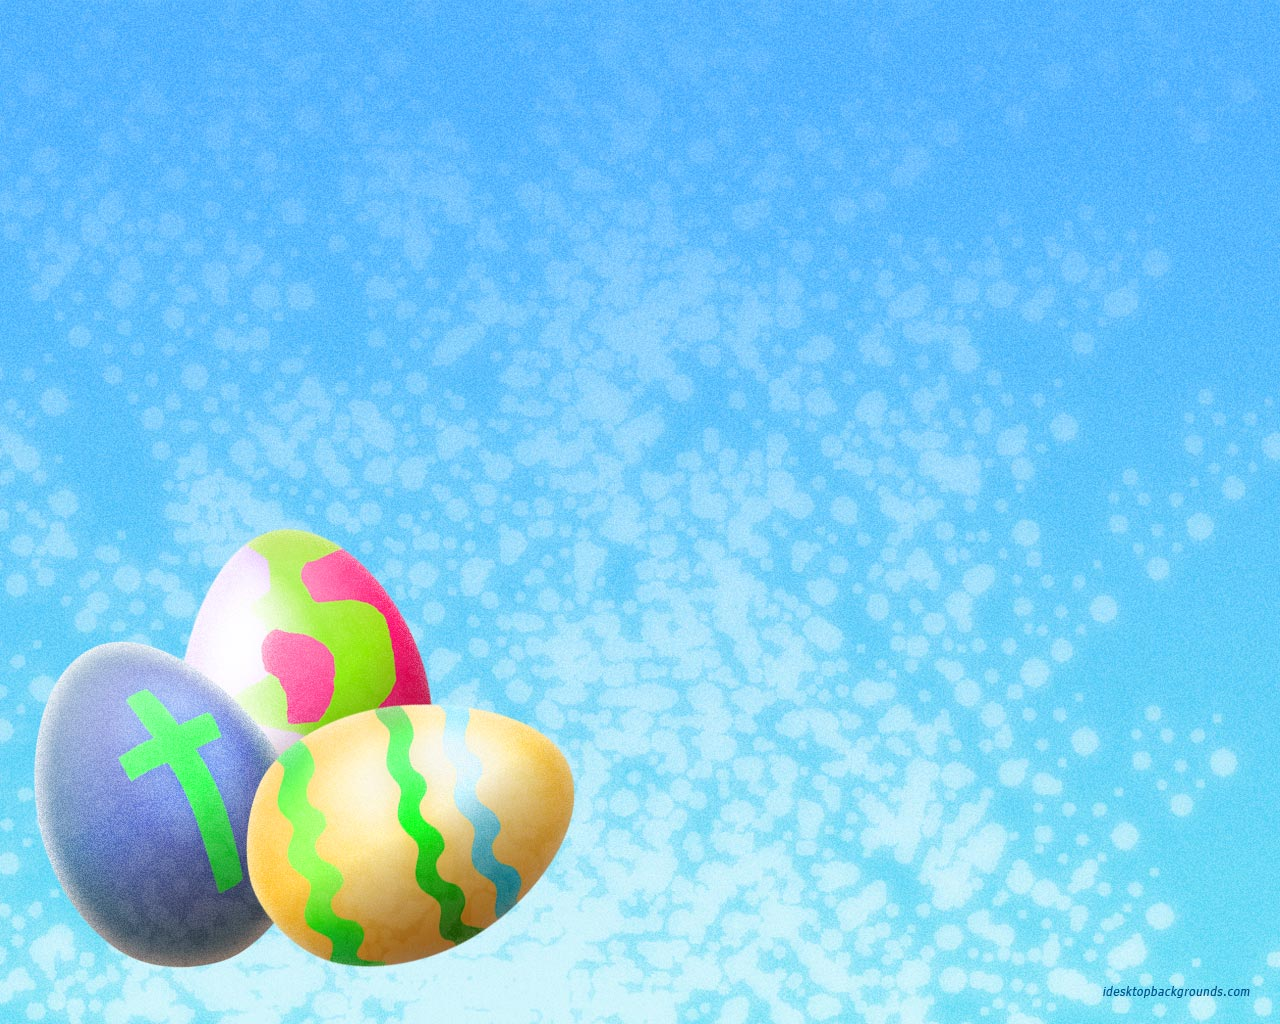 easter backgrounds christian background - photo #30